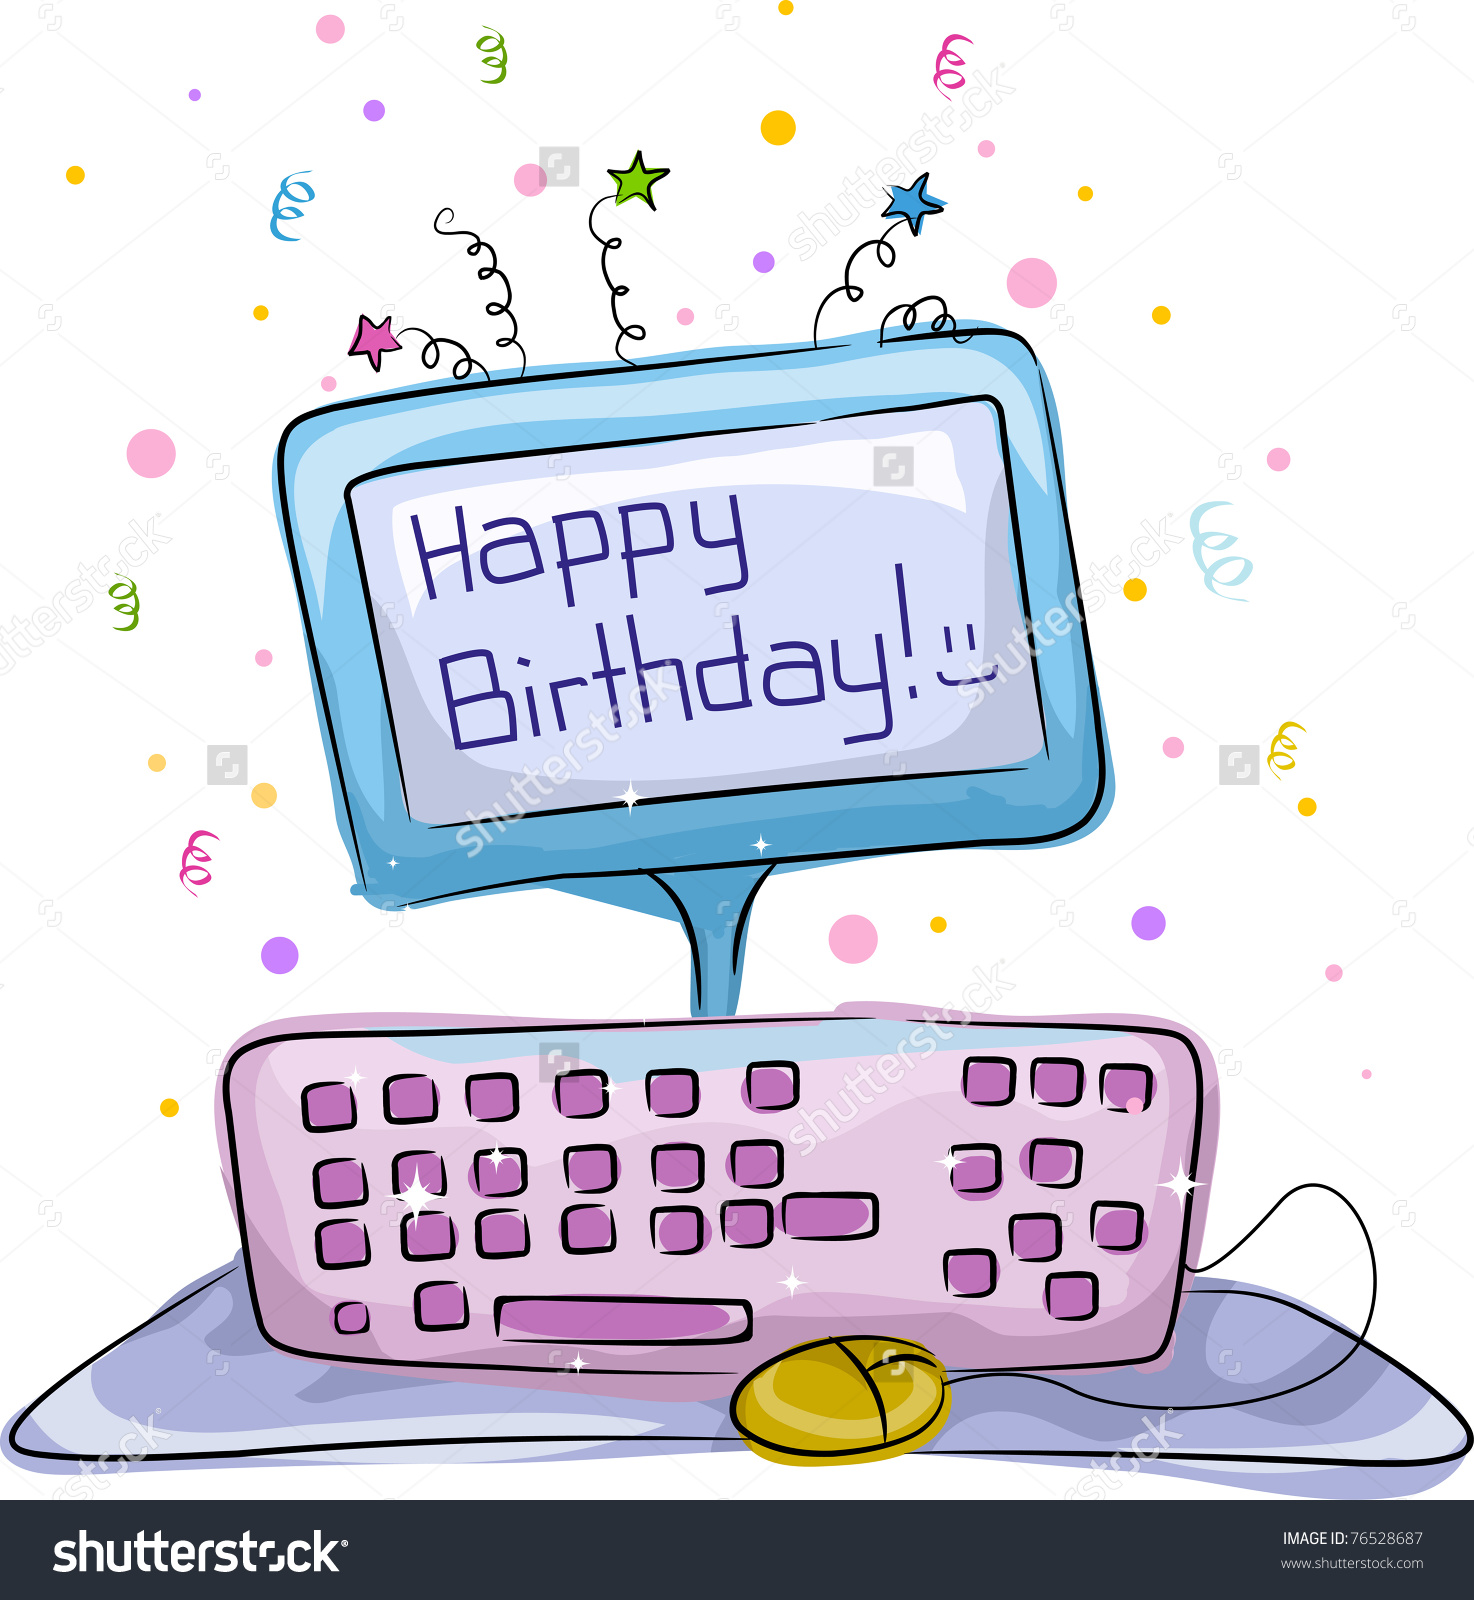 Computer birthday cake clipart banner library stock Illustration Birthday Cake Computer Theme Stock Vector 76528687 ... banner library stock